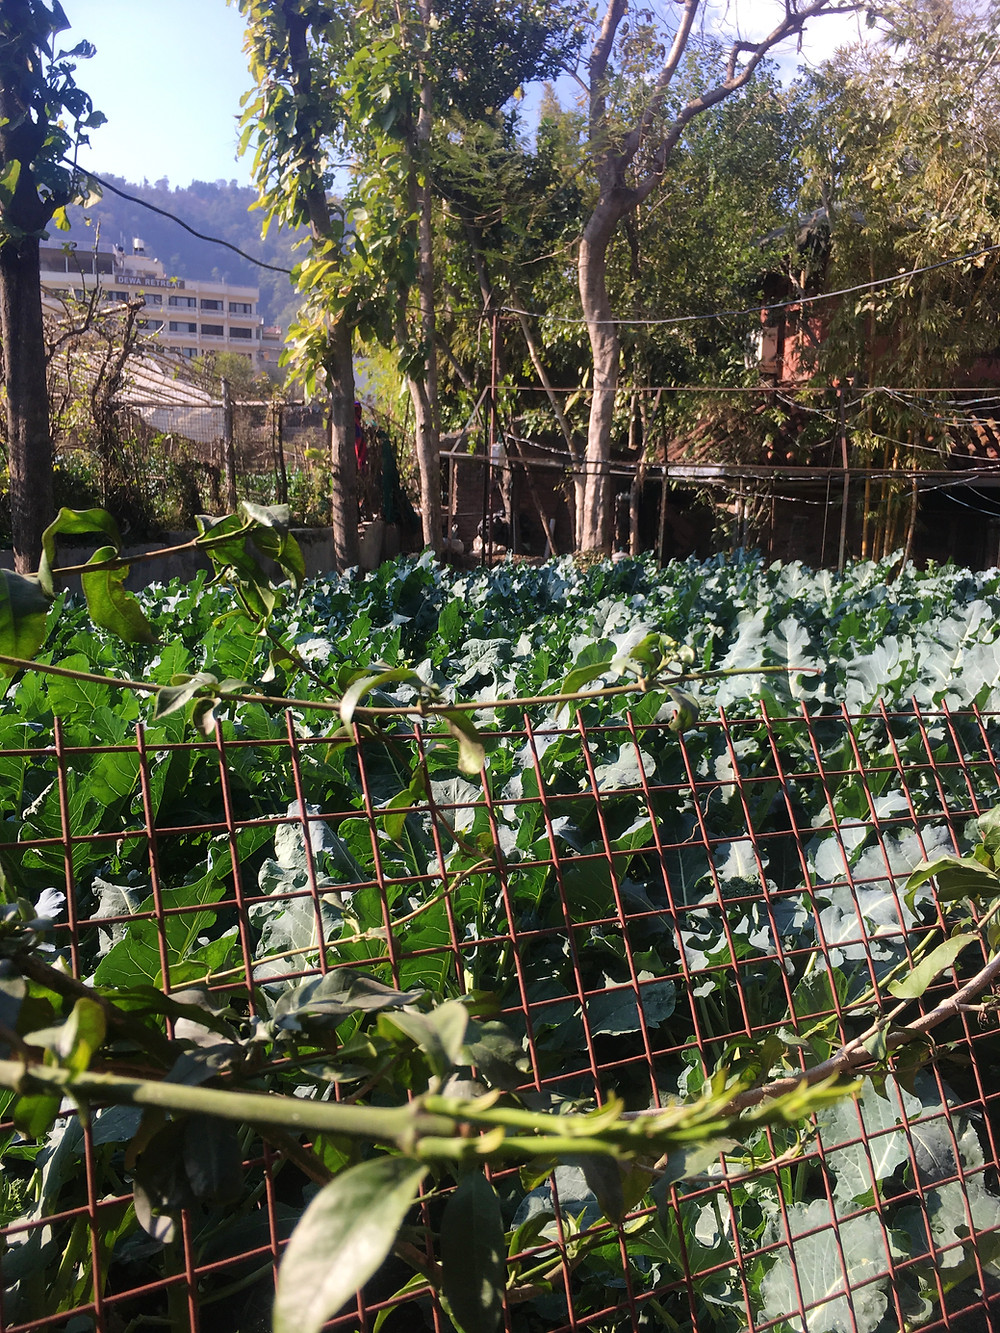 kale garden in rishikesh at ramanas cafe.